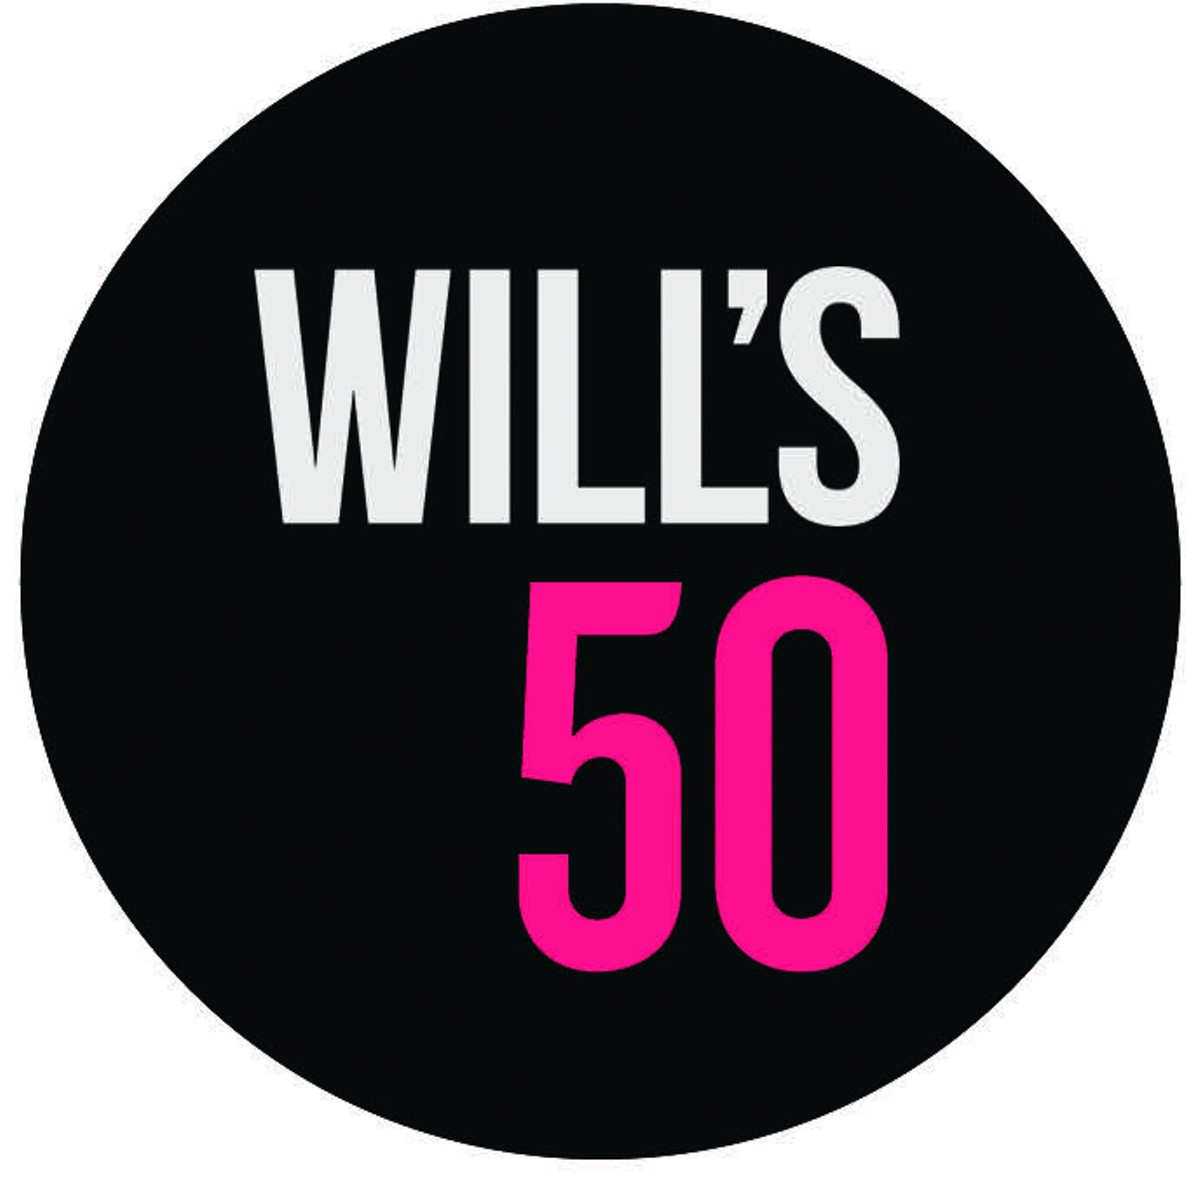 New logo for the Will's 50 district